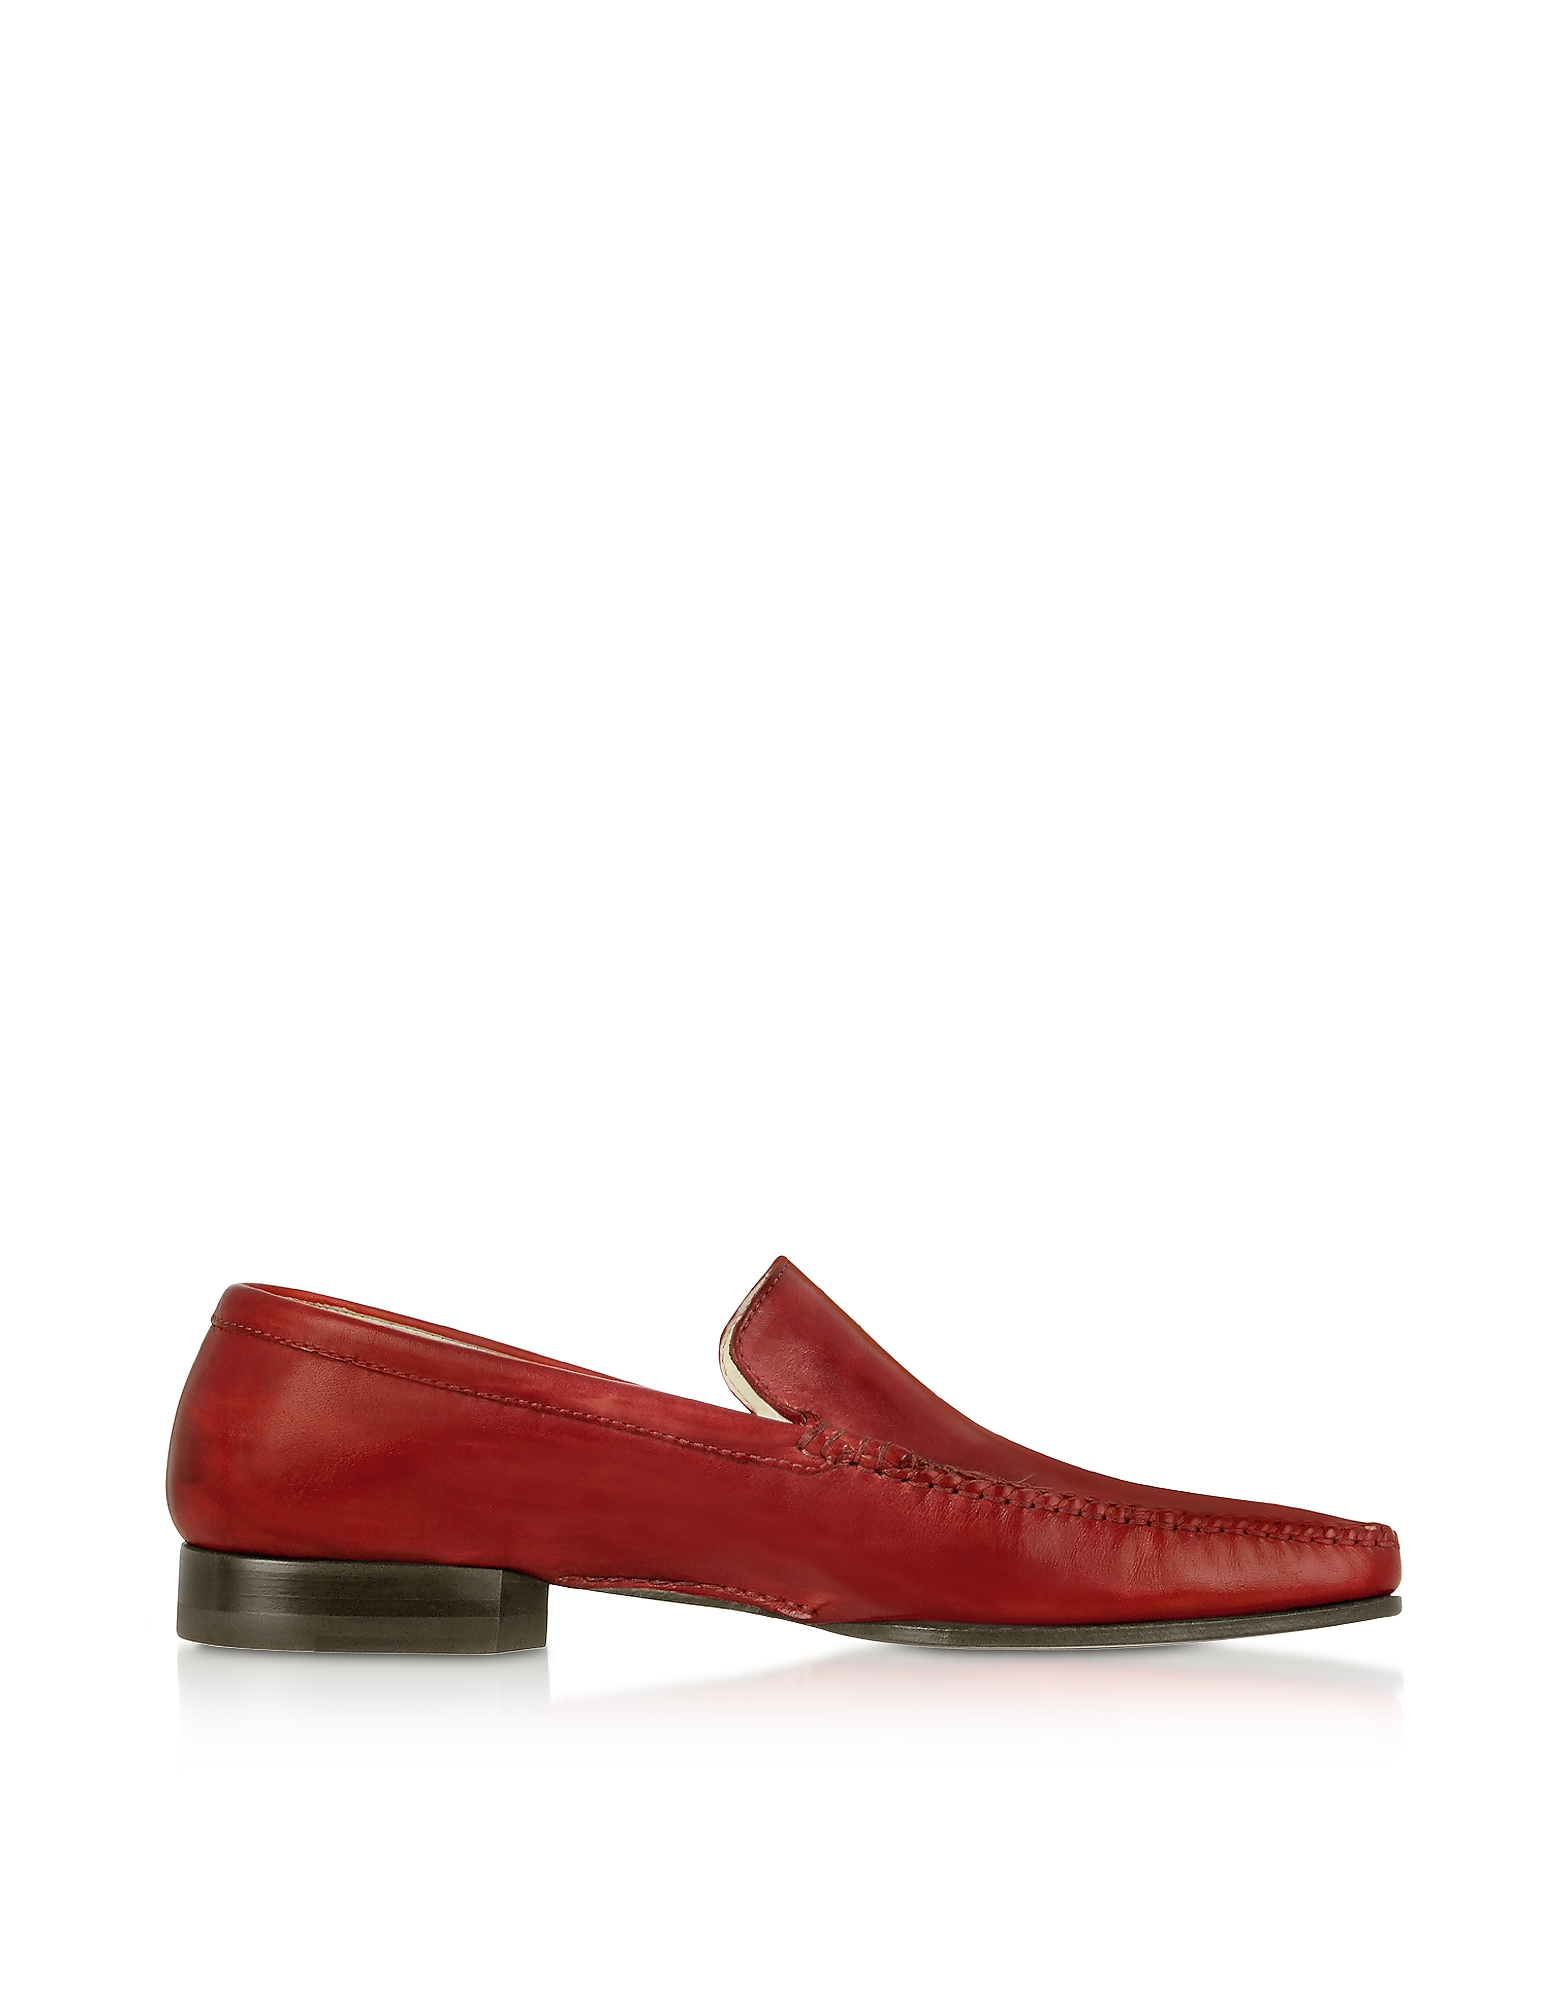 Pakerson Shoes, Red Italian Handmade Leather Loafer Shoes